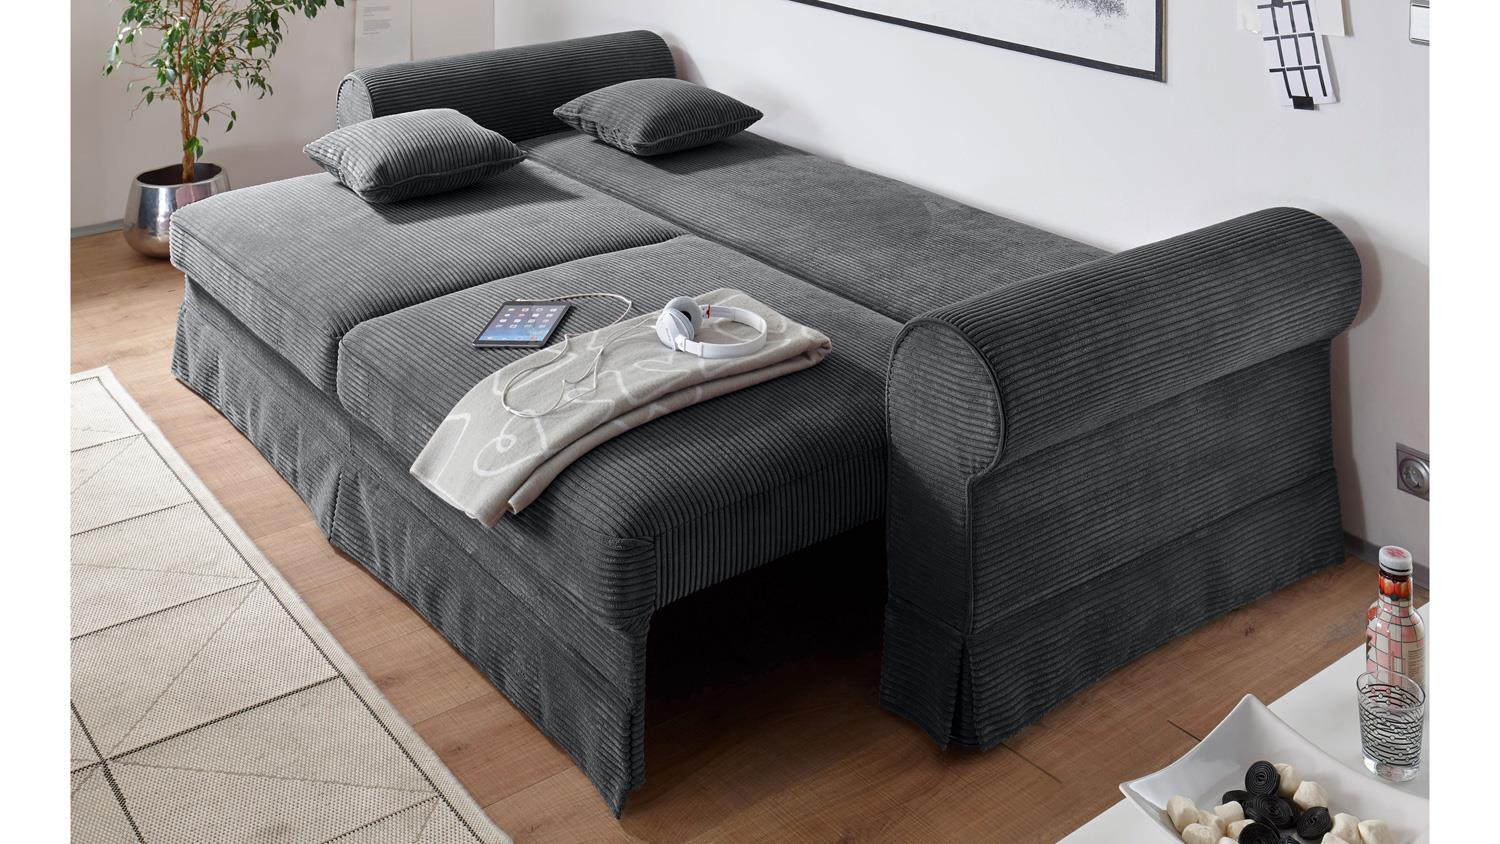 sofa 3 sitzer yankee stoff anthrazit schlaffunktion 253 cm. Black Bedroom Furniture Sets. Home Design Ideas